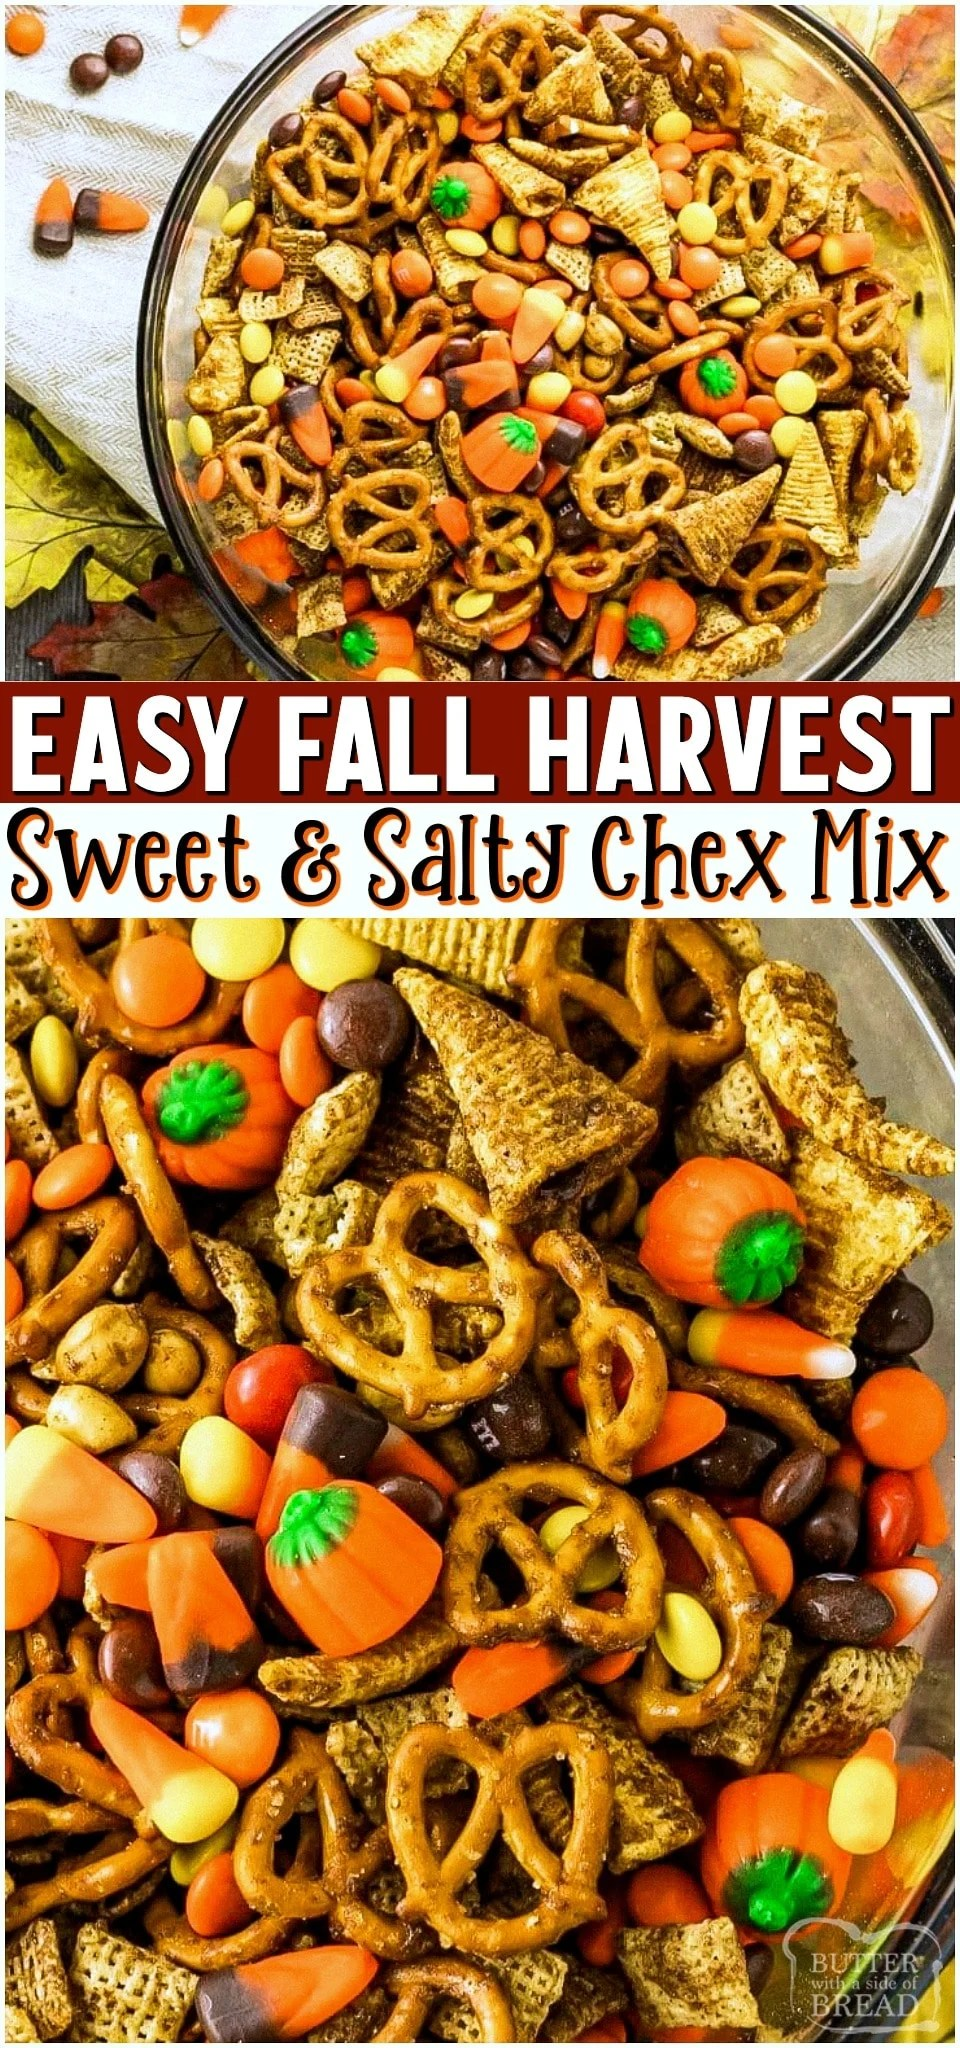 Harvest Chex Mix made with M&M's, pretzels, candy corn & more! Mix tossed in pumpkin spiced butter then baked for the perfect crunch. Perfectly simple sweet & salty Fall treat!